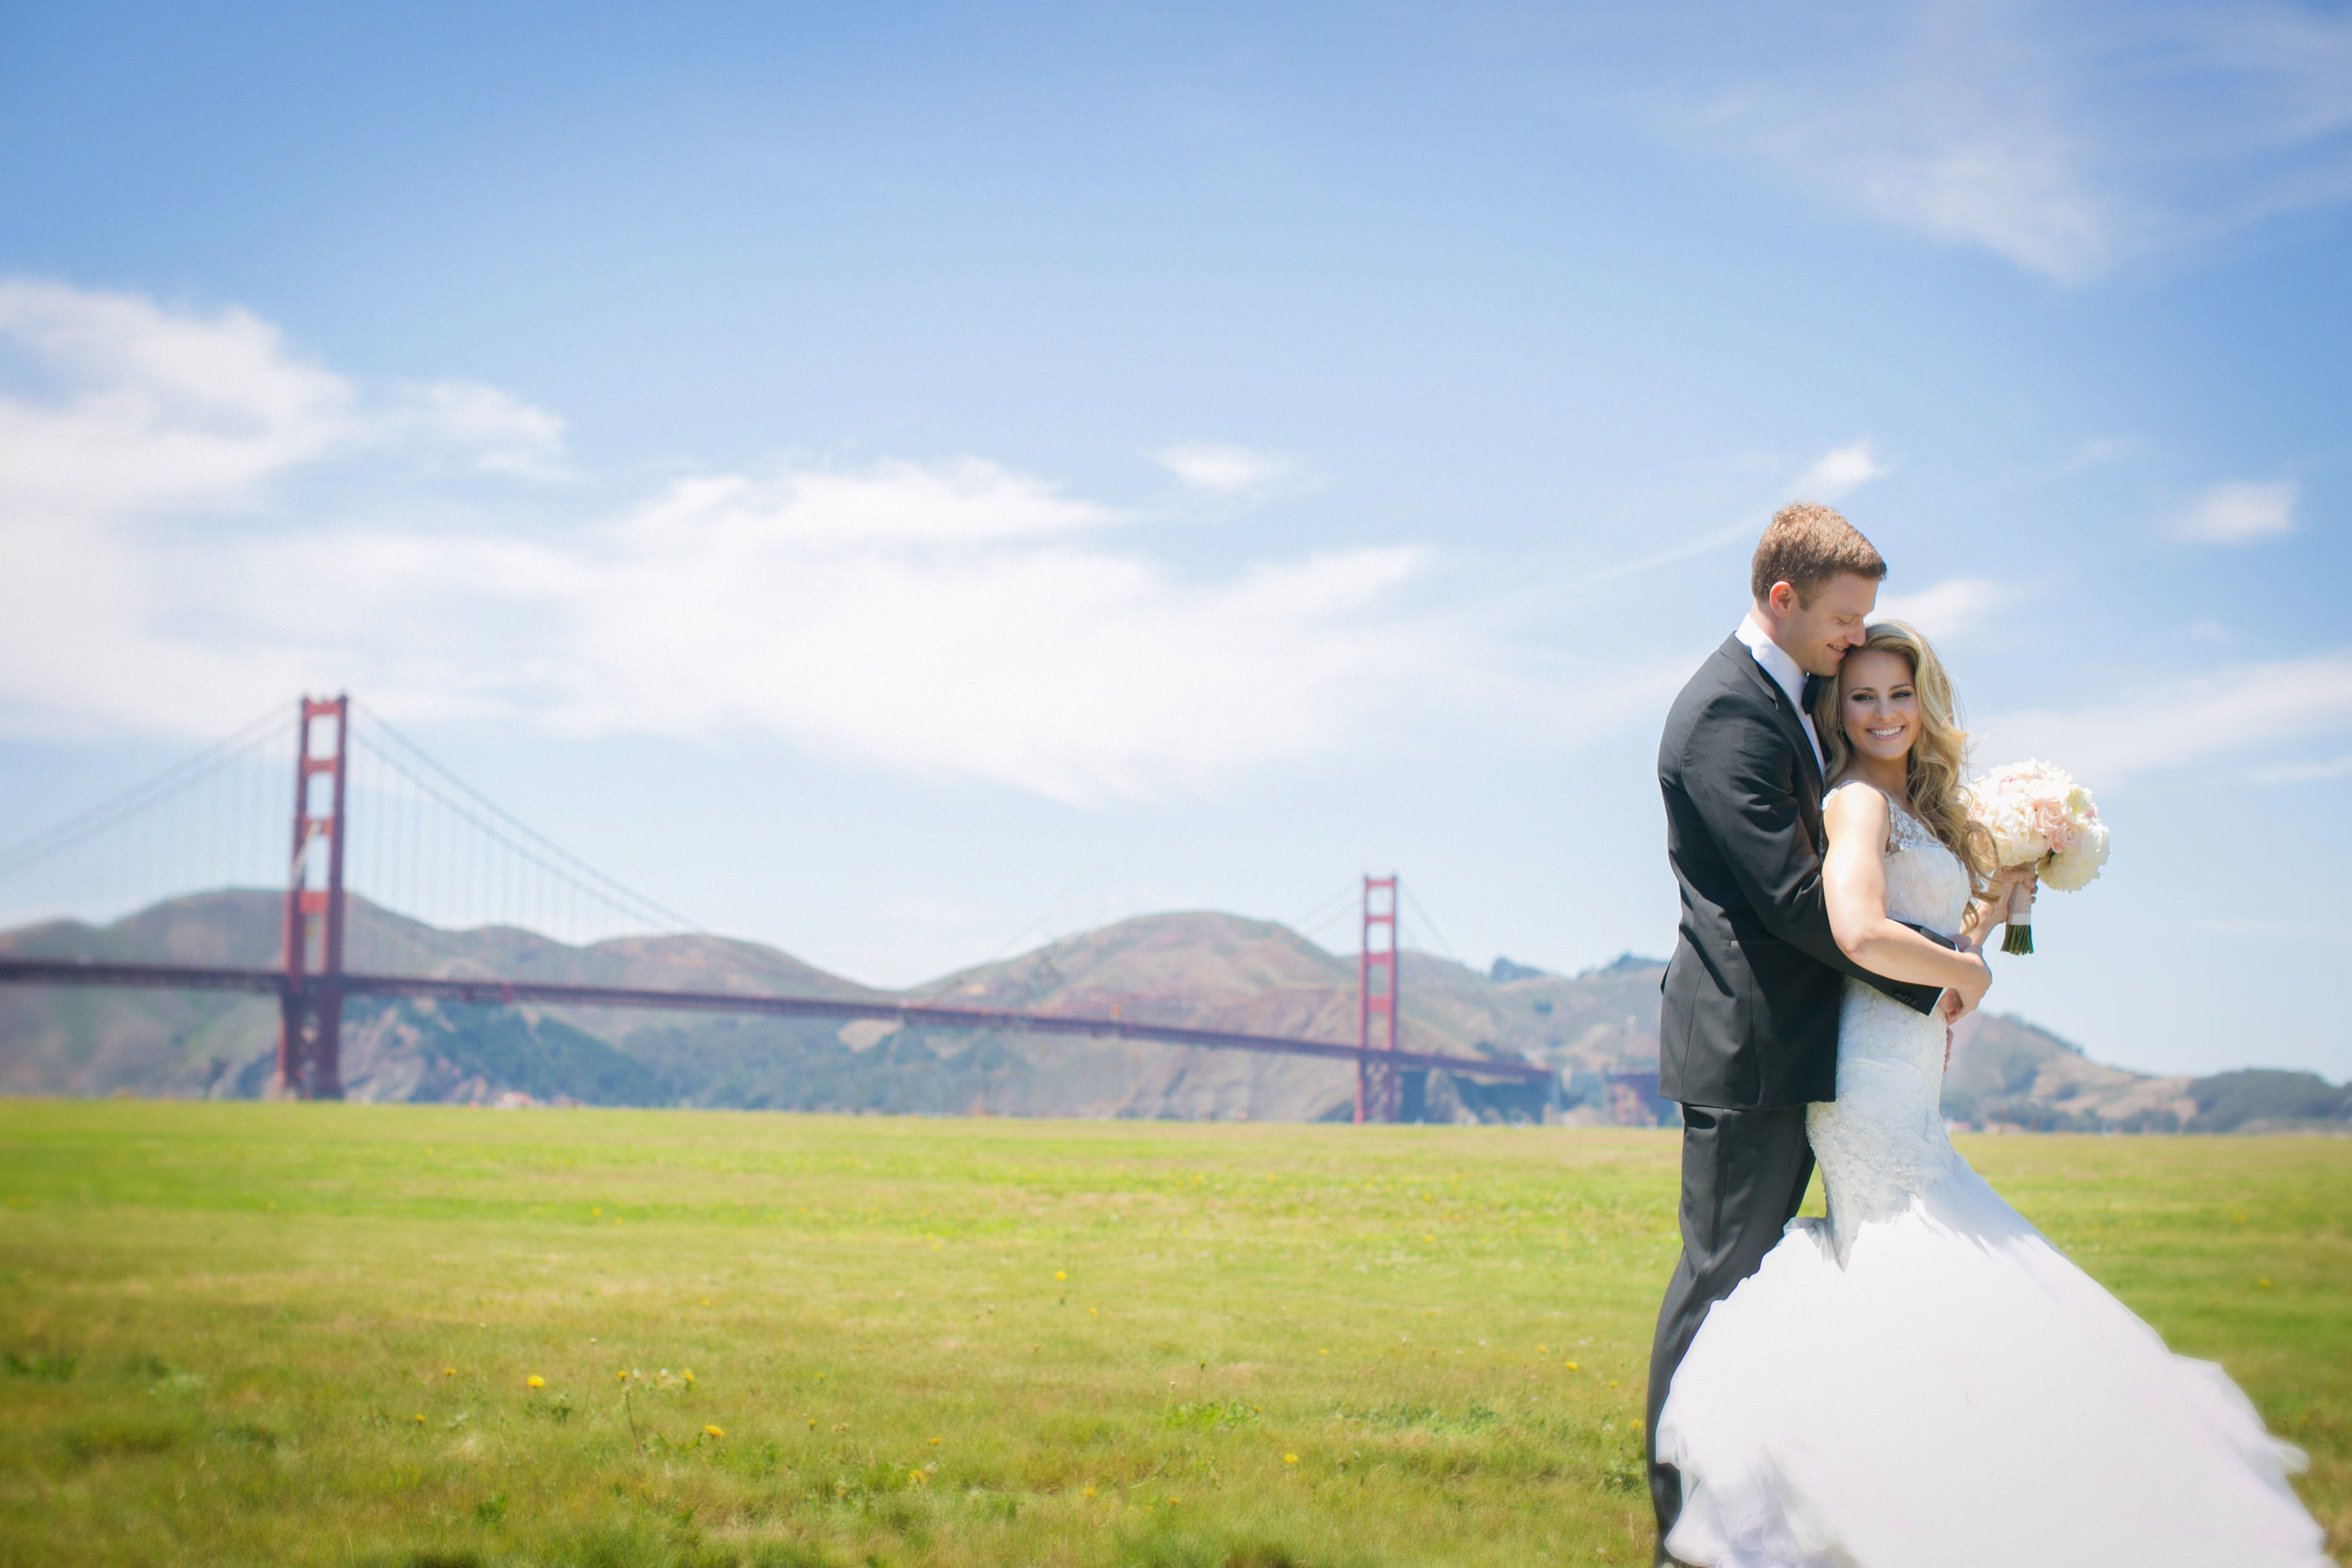 Golden Gate Bridge Bride and Groom